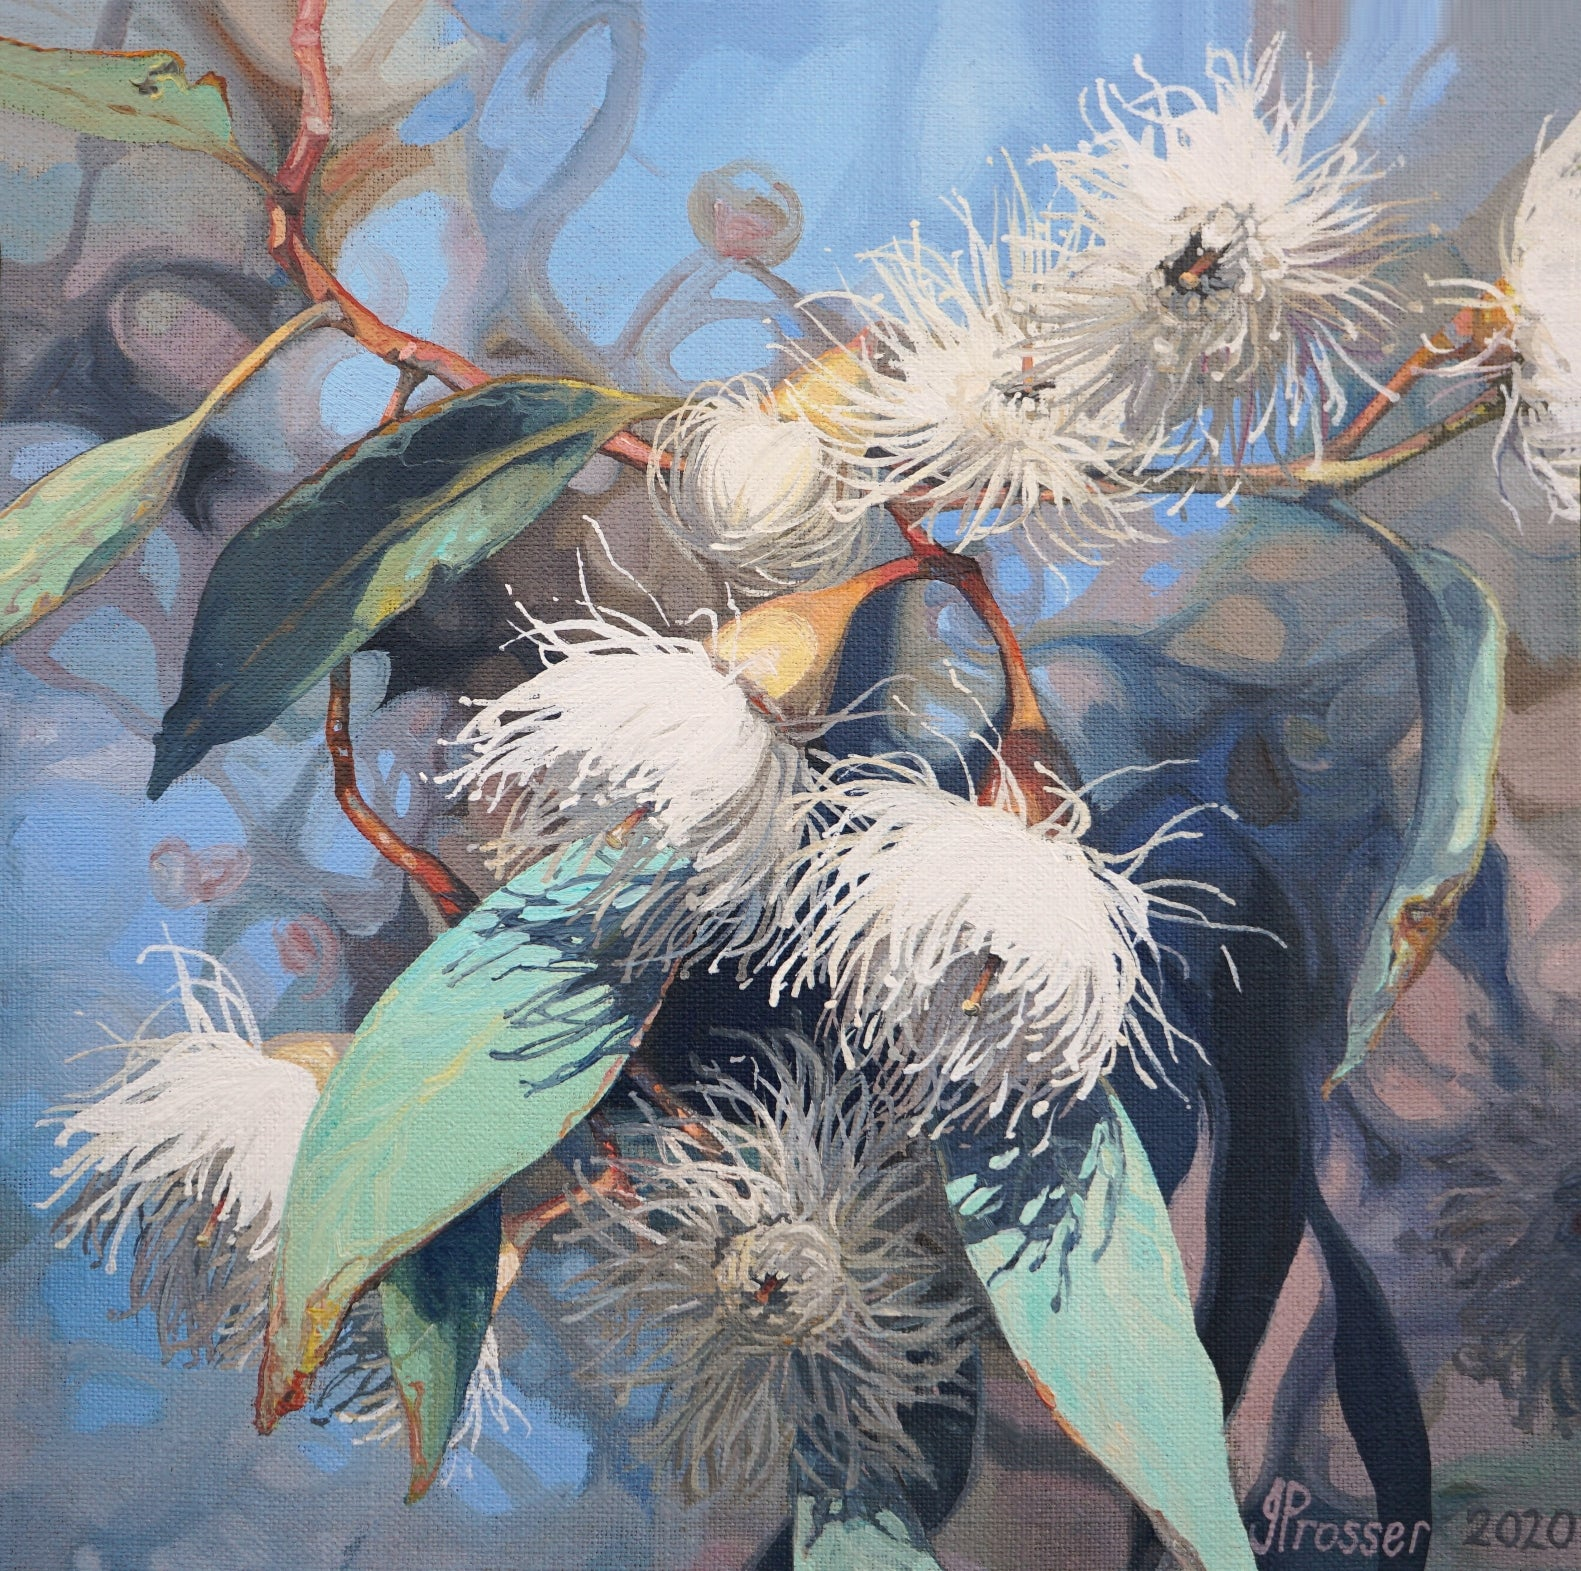 Flowering Gums painting by Jaime Prosser